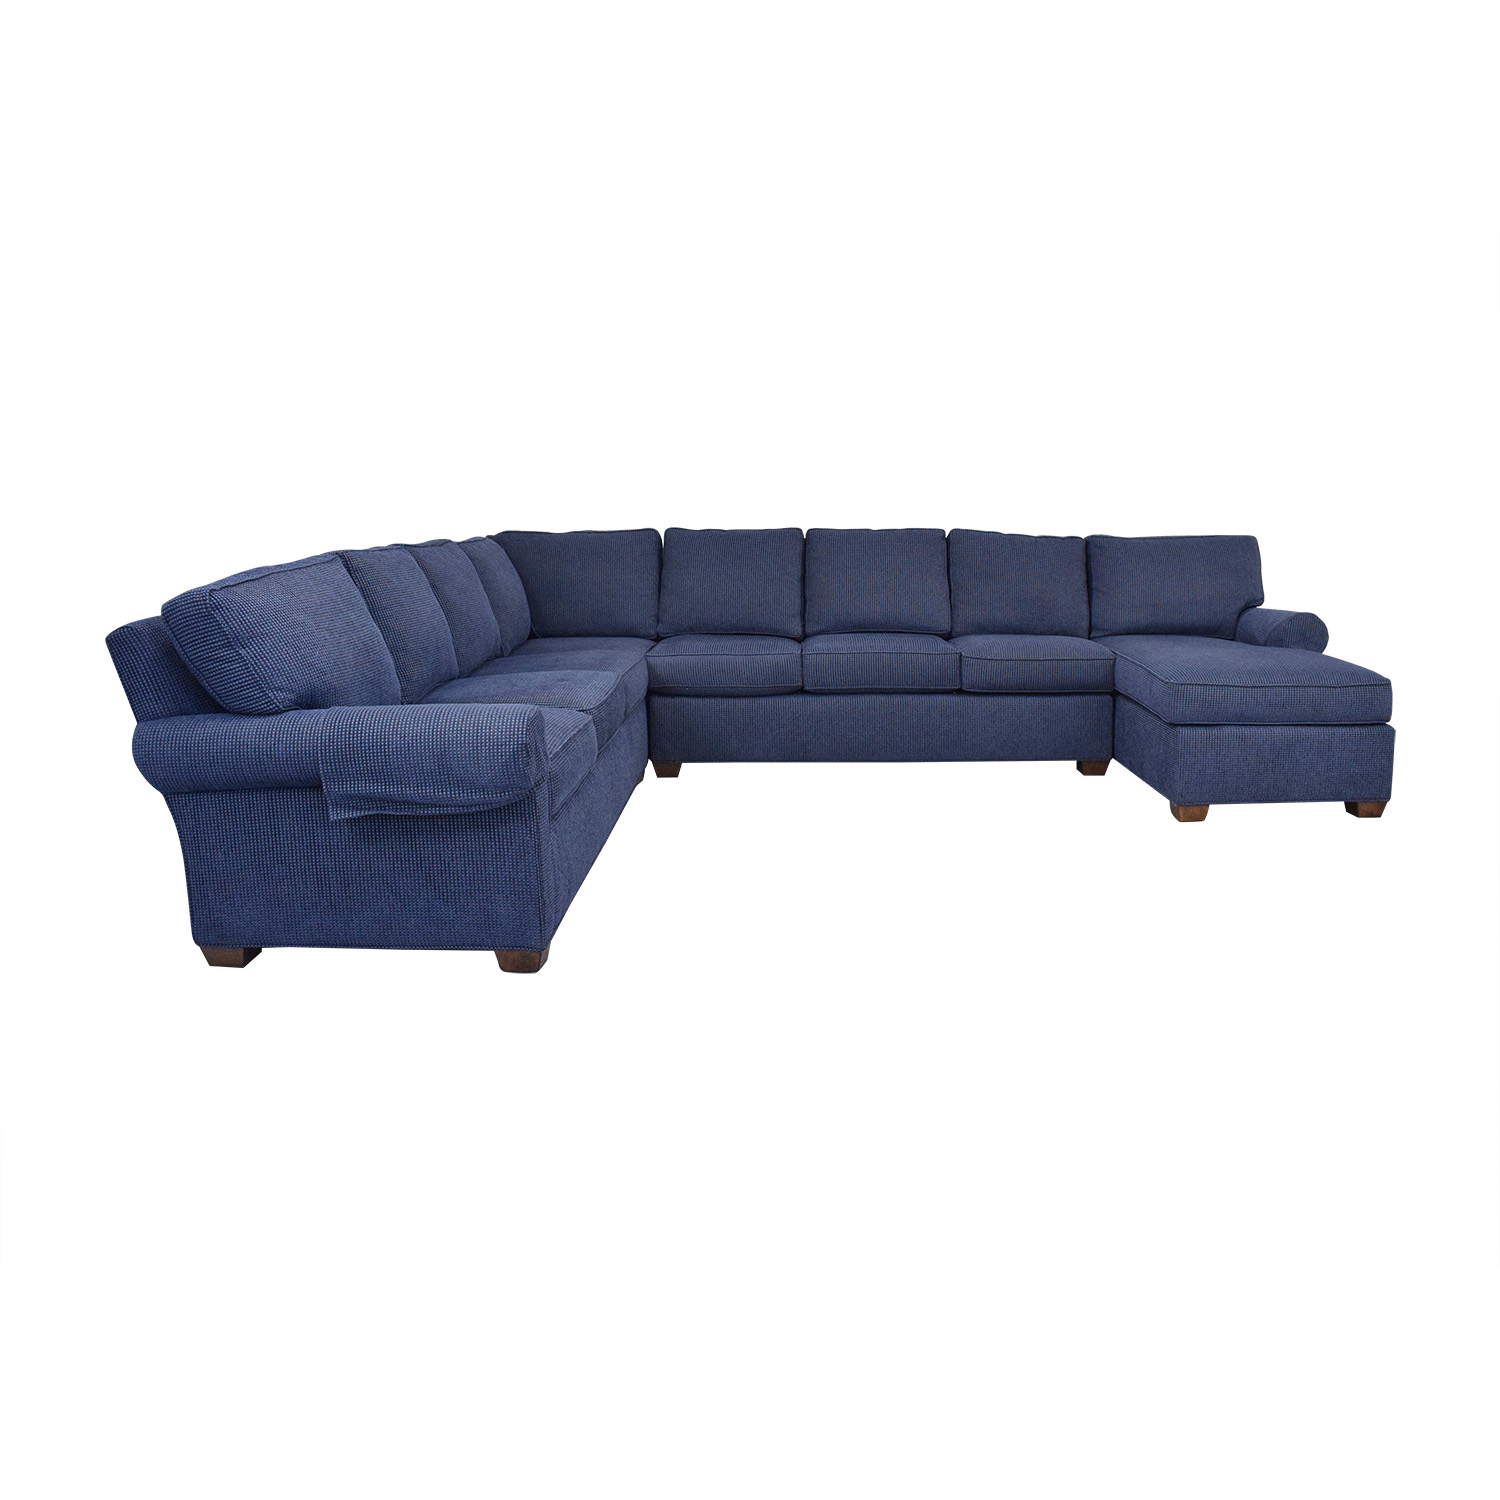 Wesley Hall Wellesley Hall Rolled Arm Sectional Sofa with Chaise Sofas